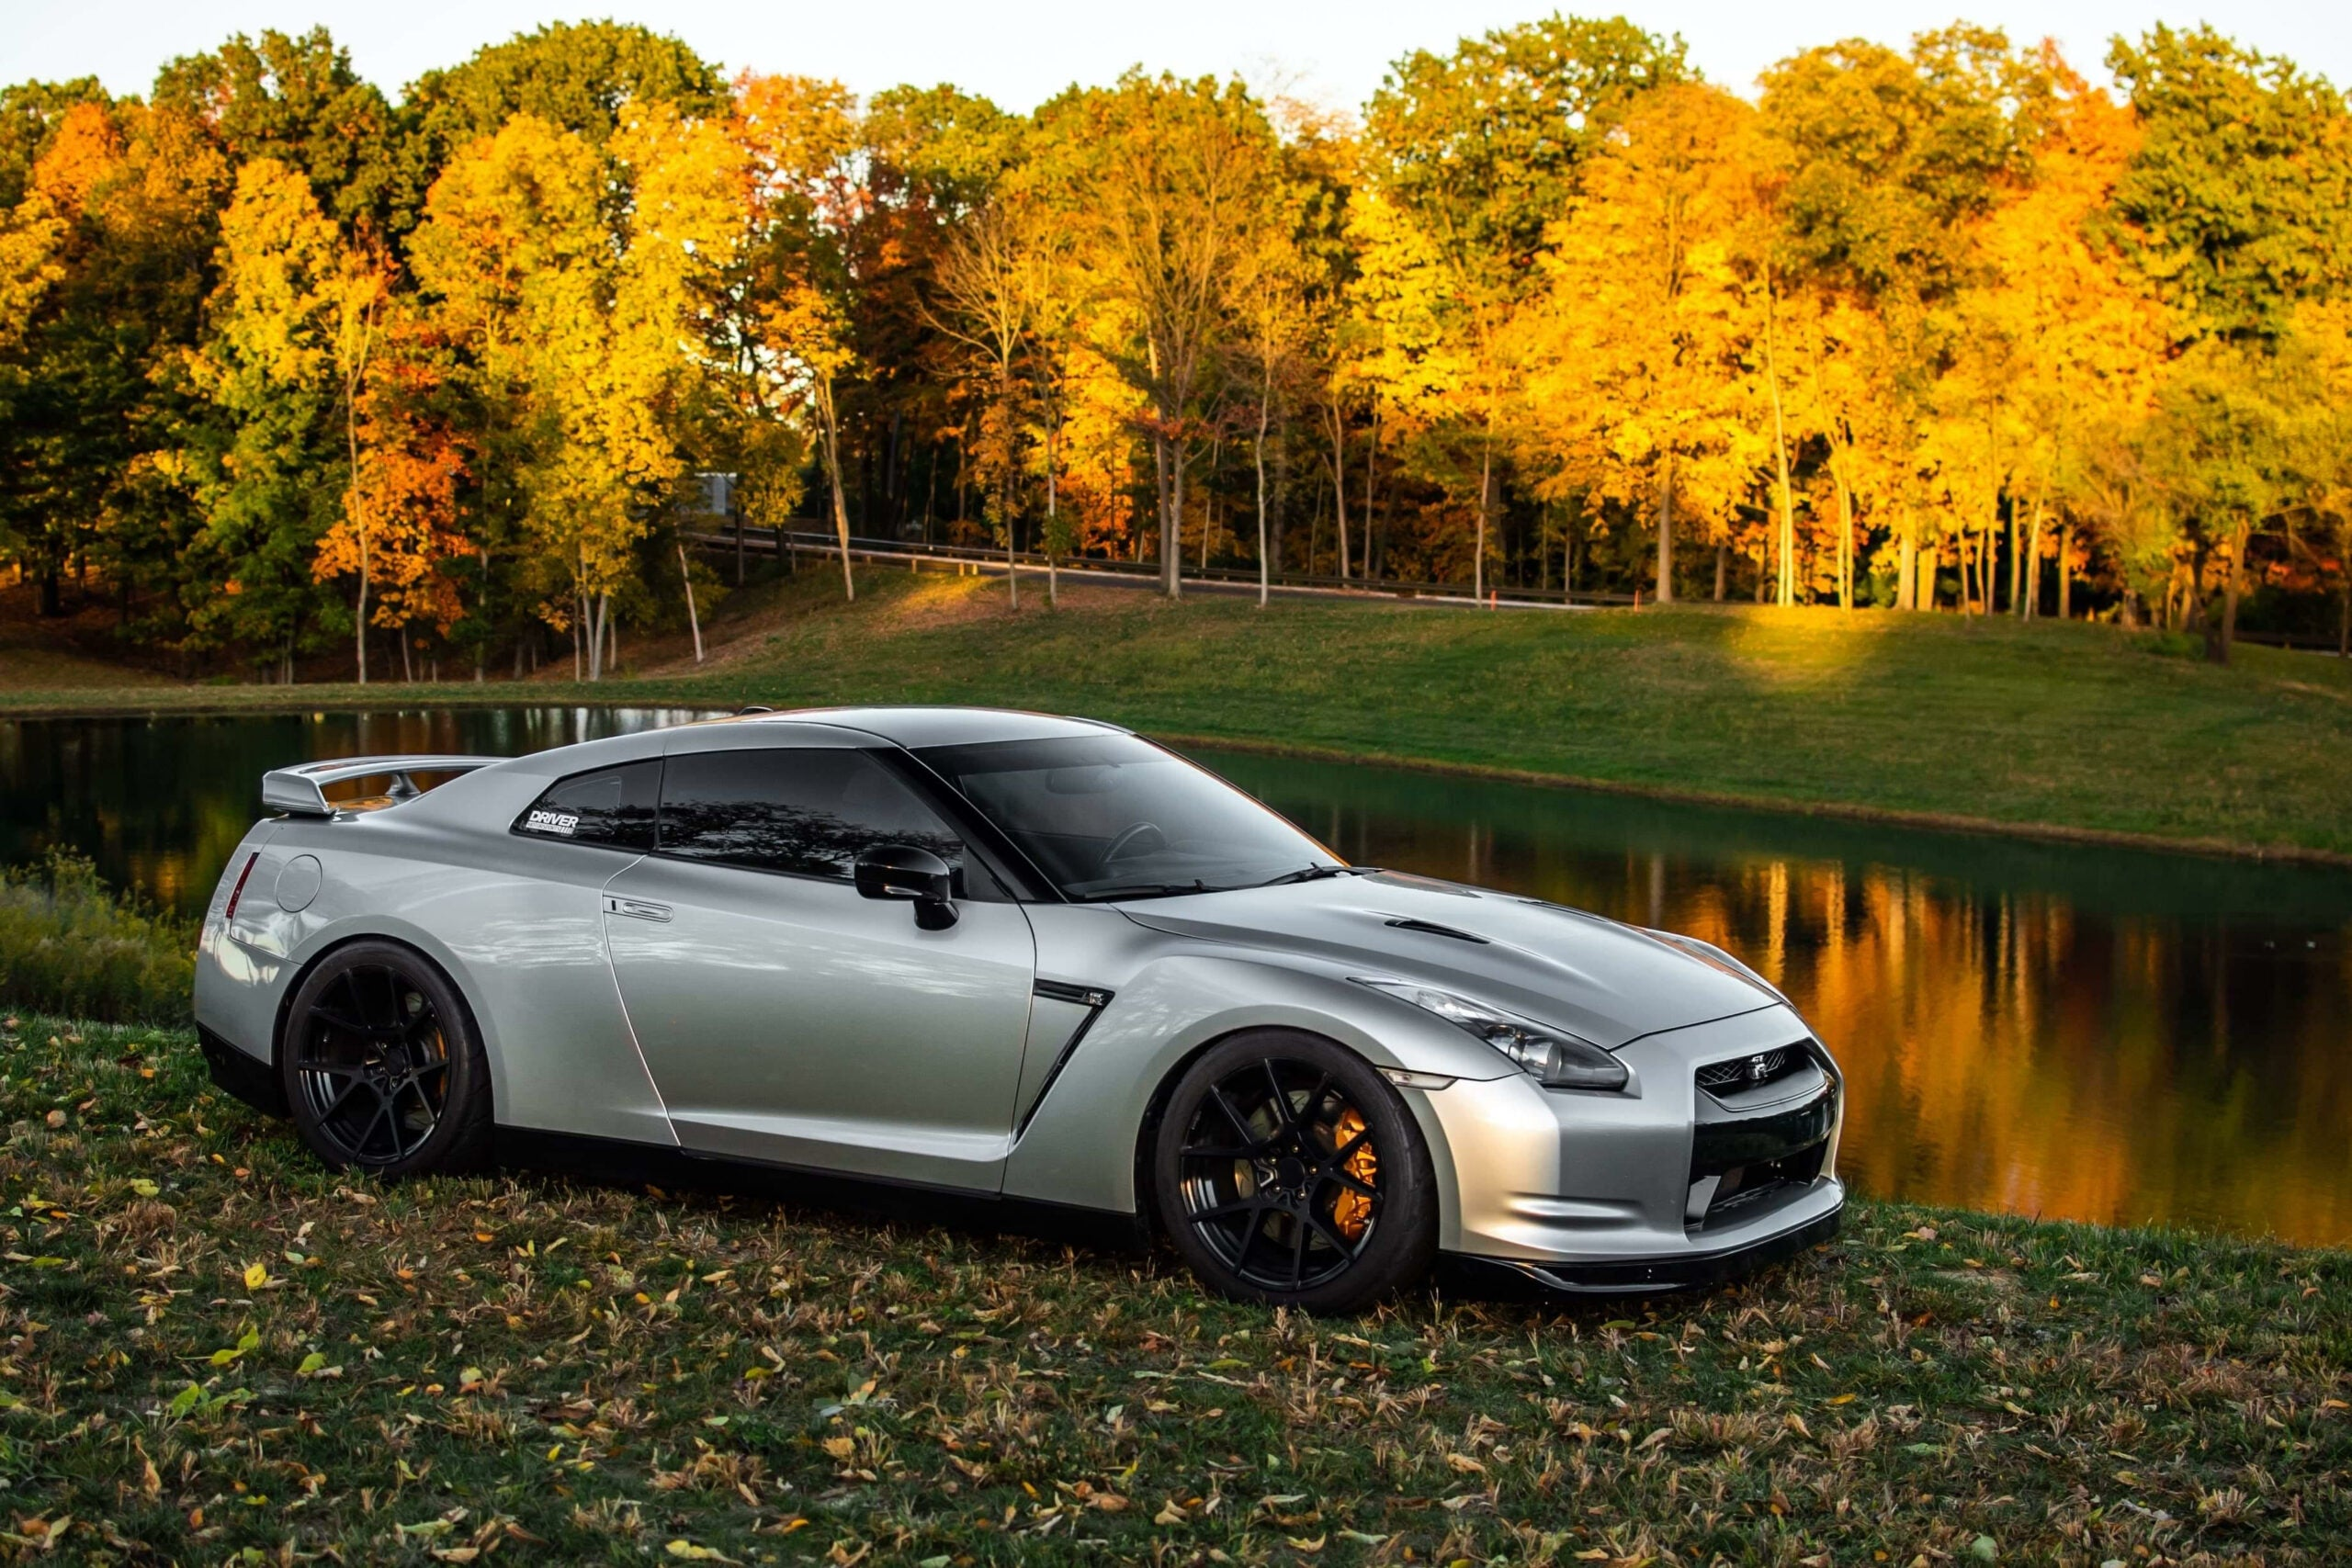 This Nissan GT-R Was Probably the Scariest Car I've Ridden In